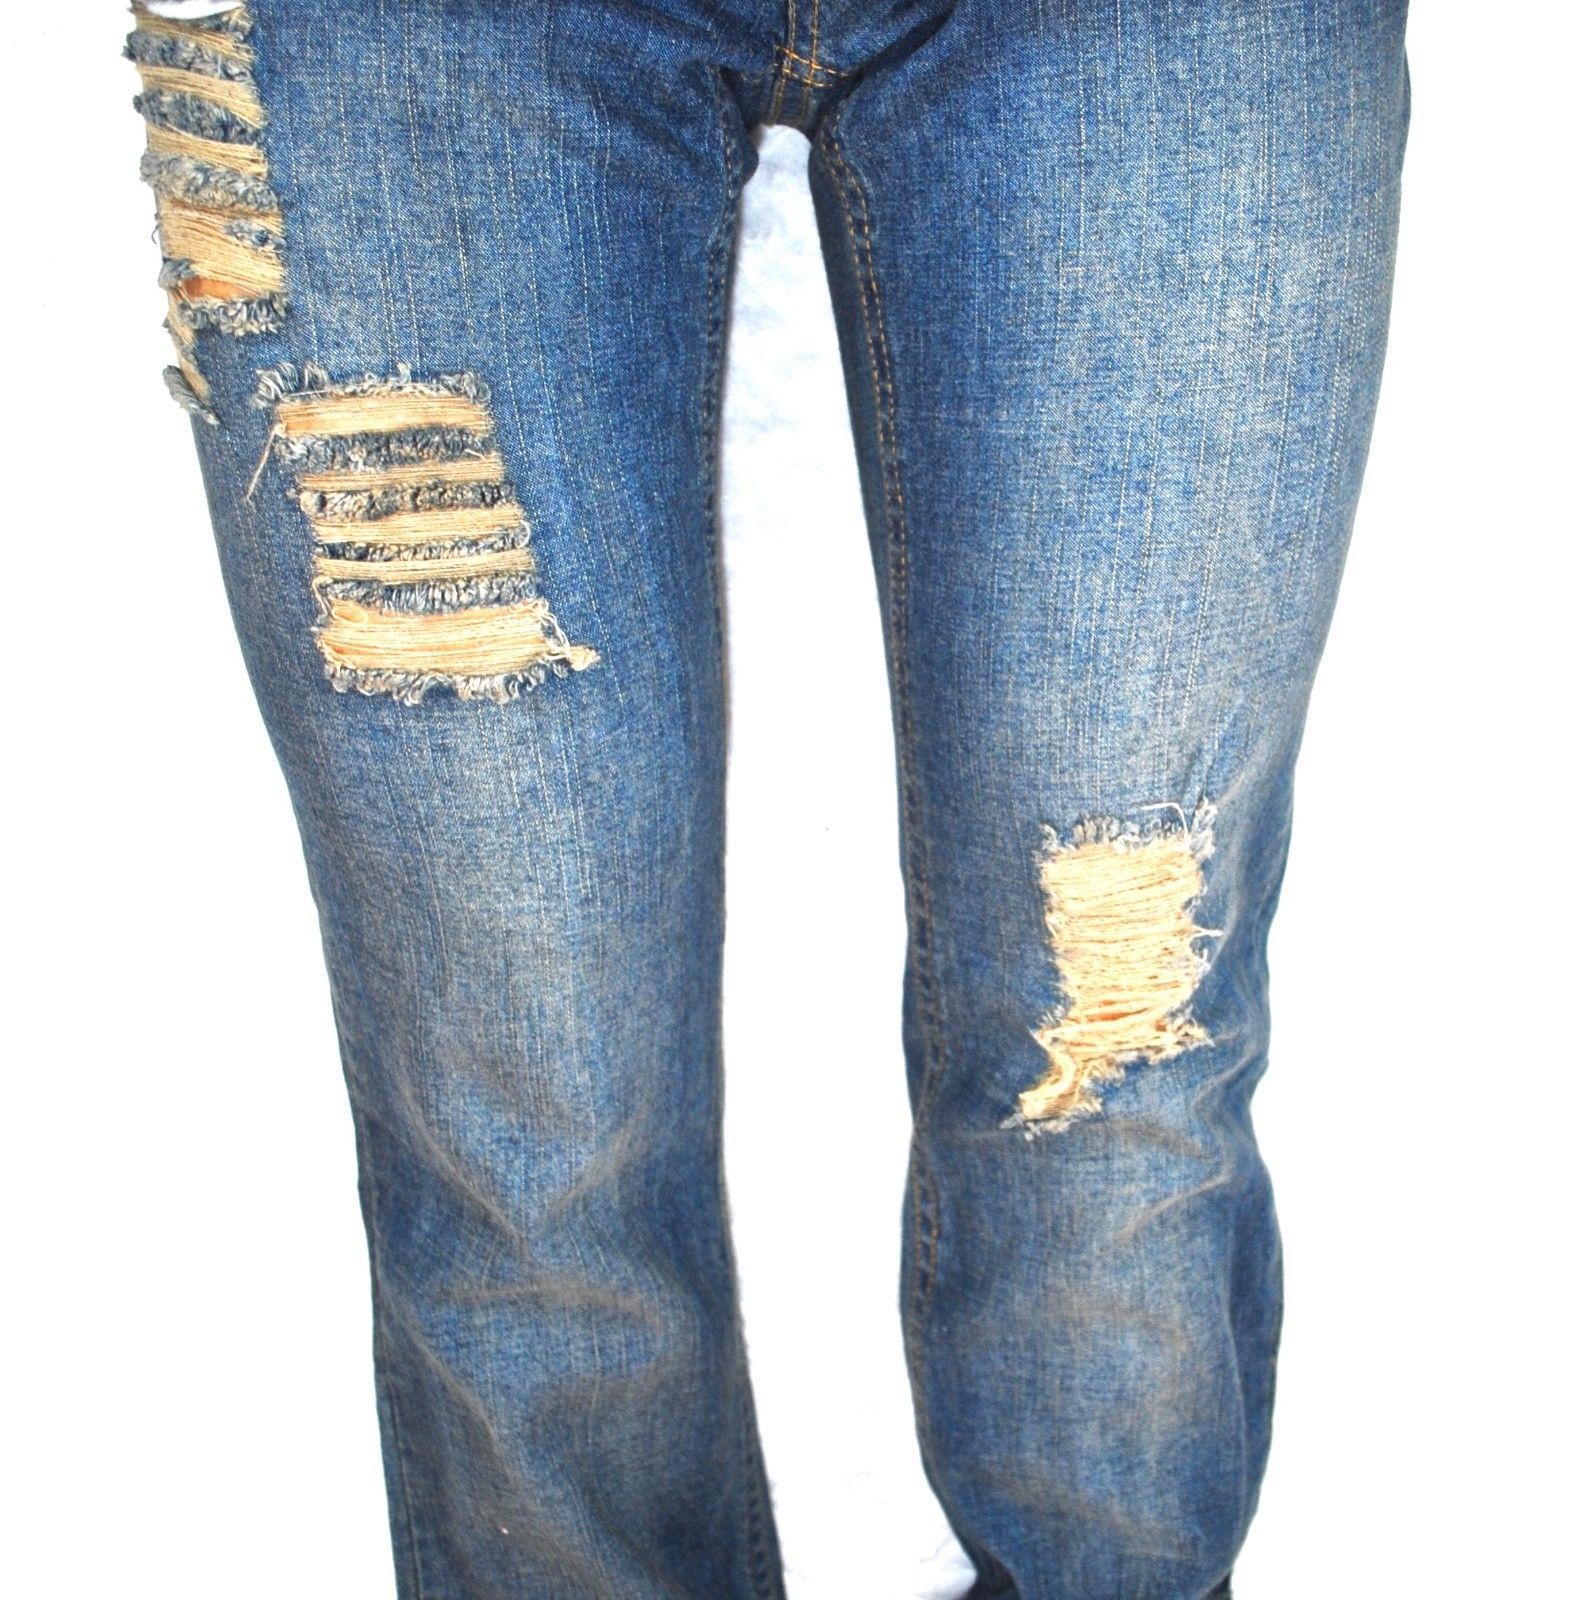 790857ed4de66 Cappuccino Boho Hippie Ripped Destroyed Low Rise Denim Blue Jeans ...